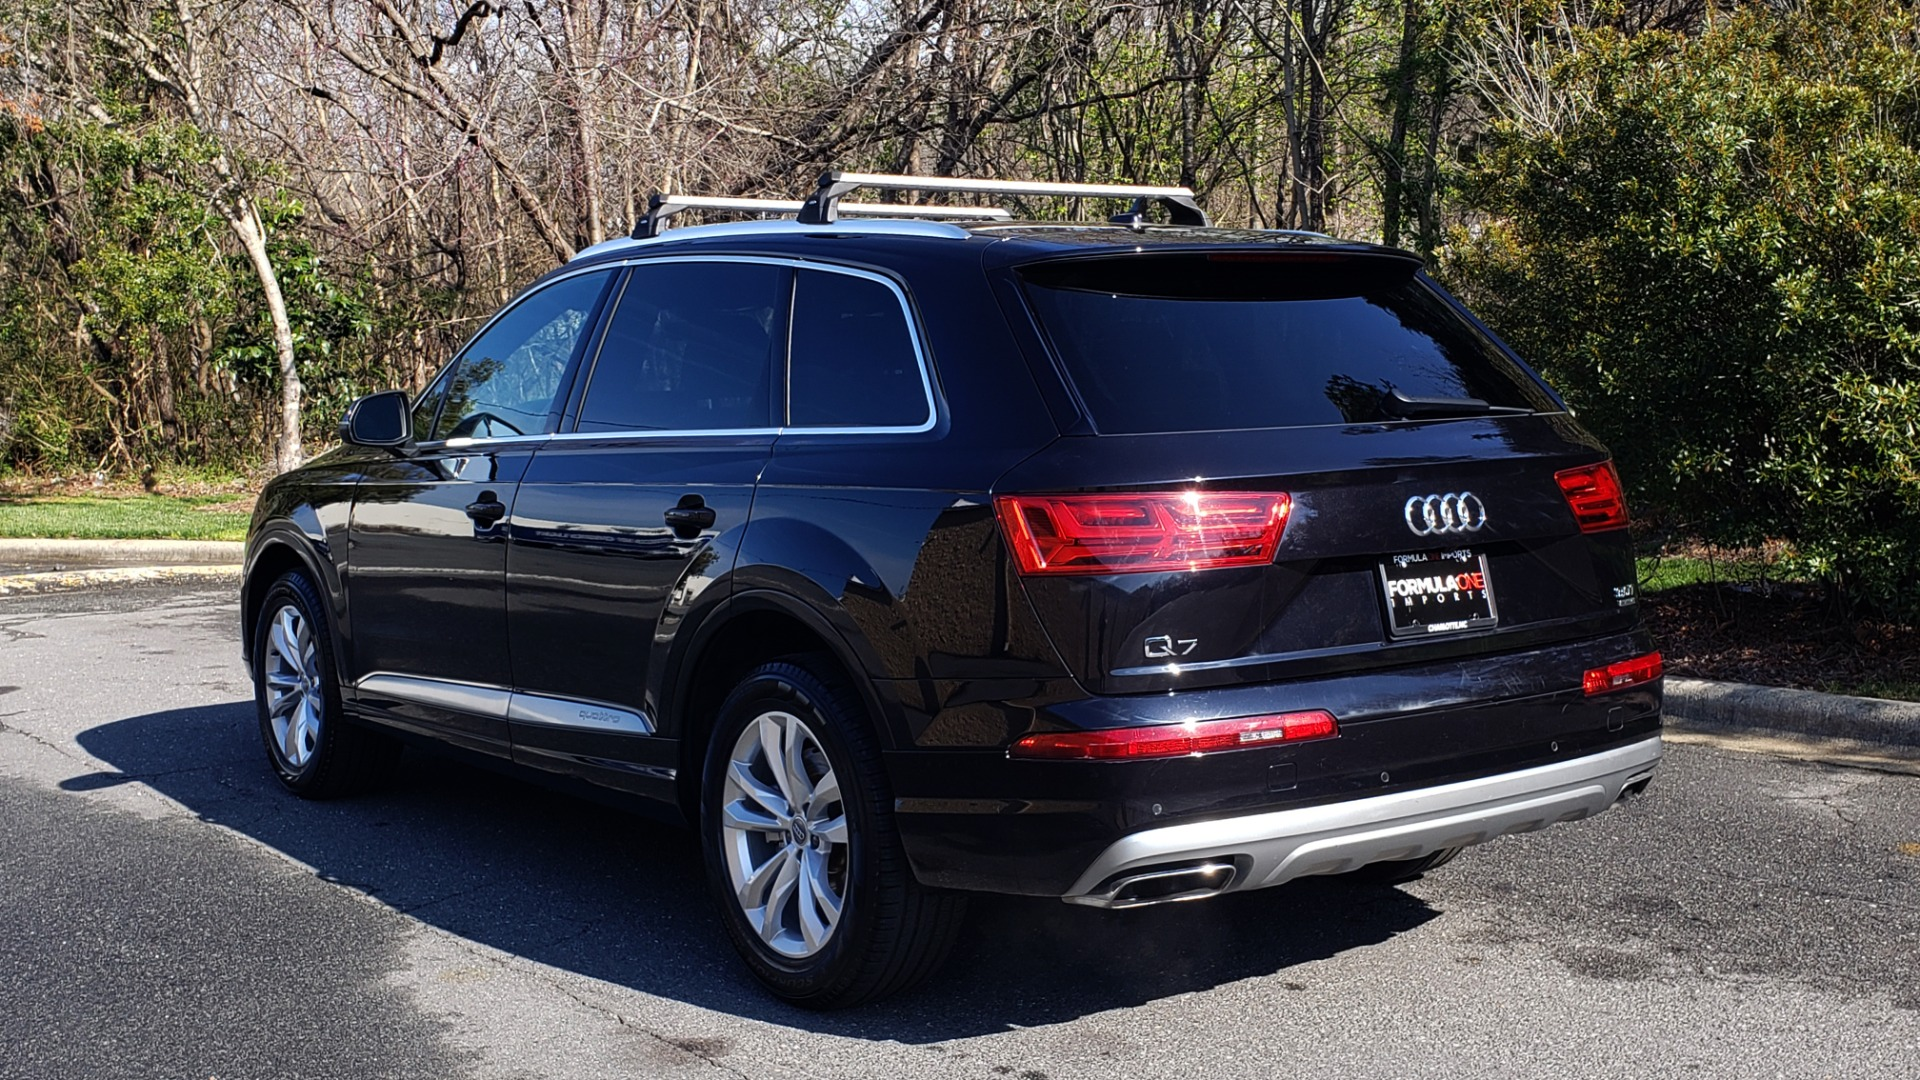 Used 2017 Audi Q7 PREMIUM PLUS 3.0T / NAV / DRVR ASST / NAV / SUNROOF / BOSE / CLD WTHR for sale Sold at Formula Imports in Charlotte NC 28227 2